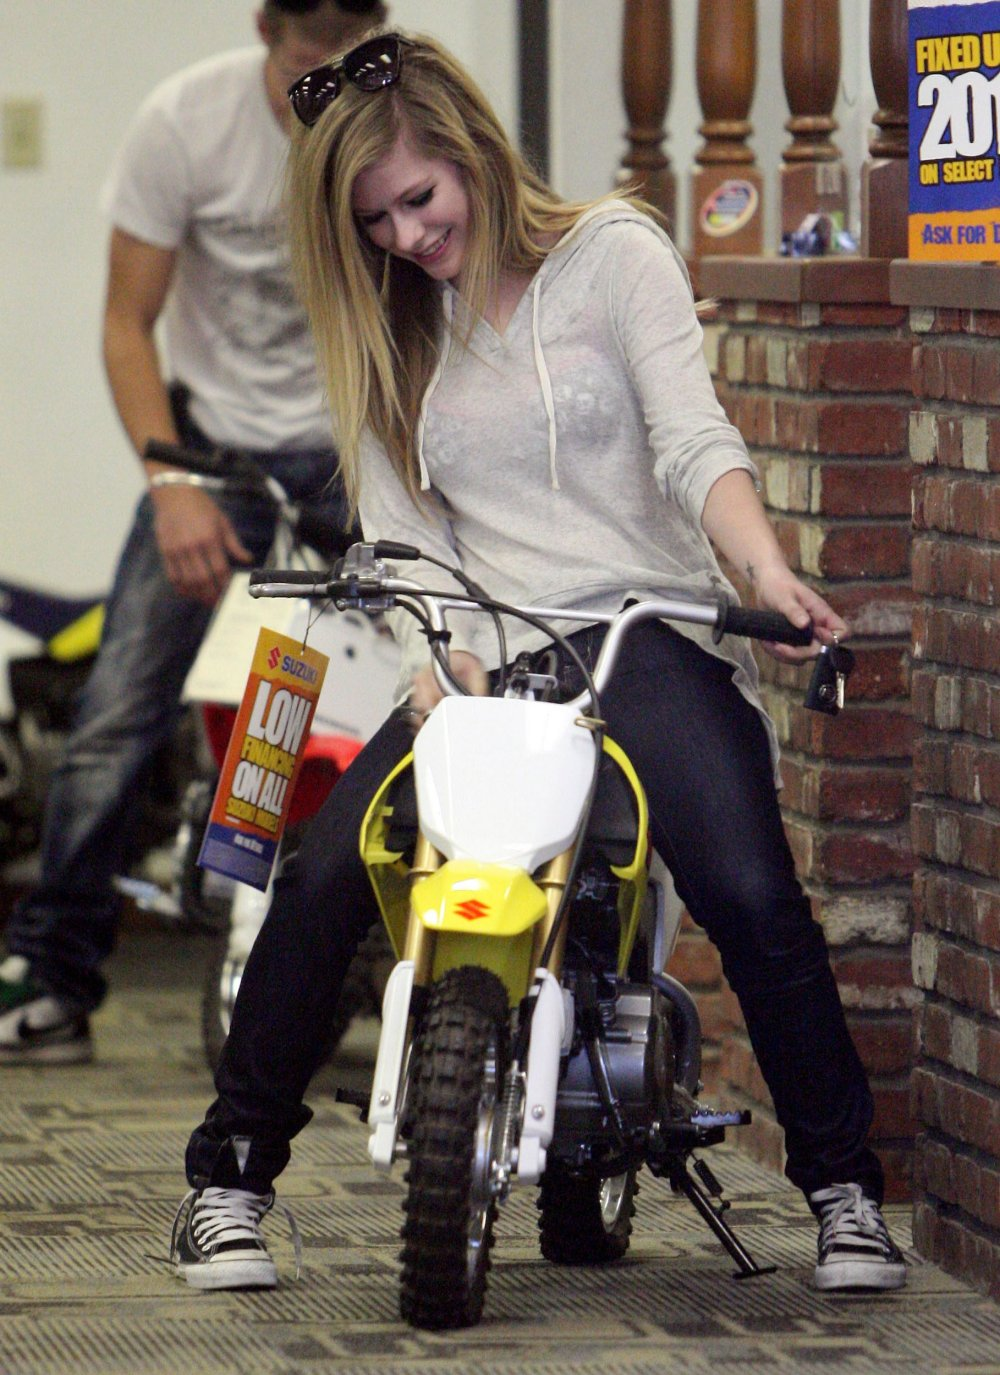 http://2.bp.blogspot.com/_-knQcvB6hEw/TCTZ1jK9wfI/AAAAAAAAH48/X1VtuB7V90k/s1600/Avril+Lavigne+-+checking+out+some+rides+at+Honda+of+Hollywood6.jpg